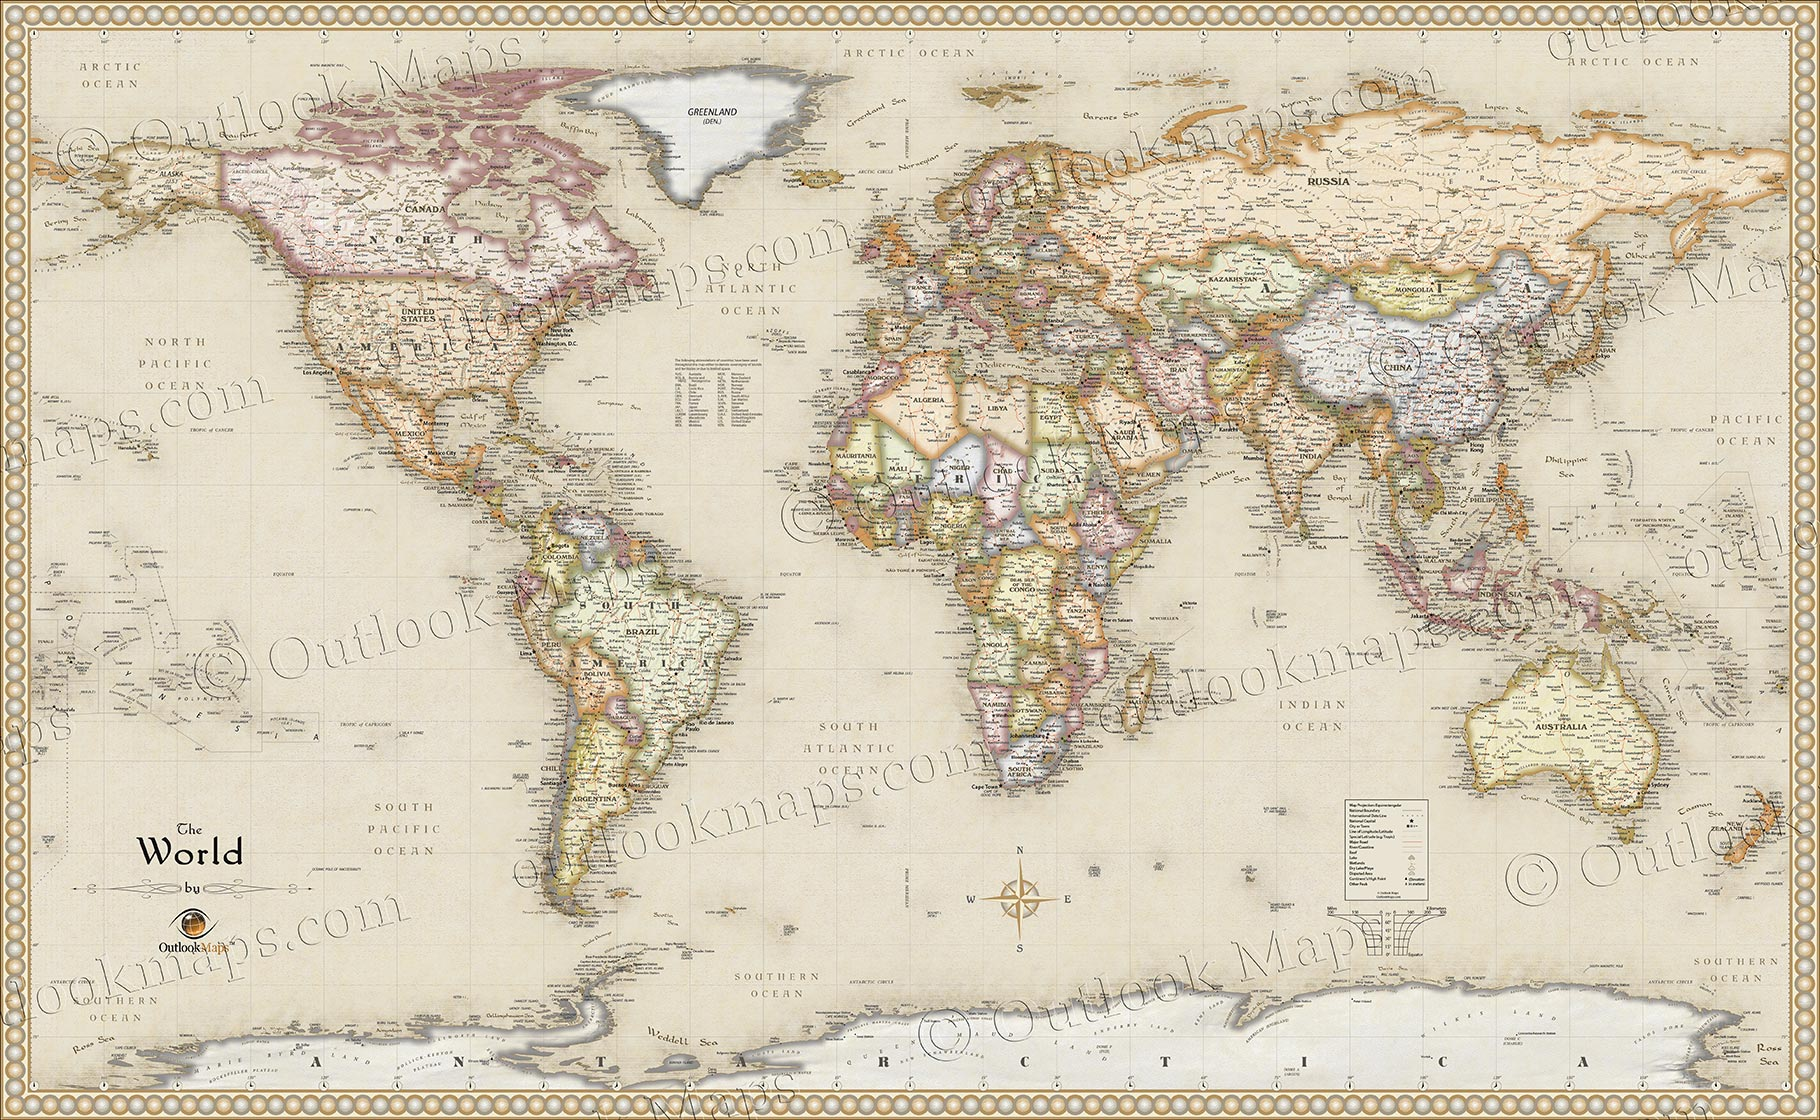 Vintage Map Of The World World Antique Style Map | Current Map in Old Vintage Map Style